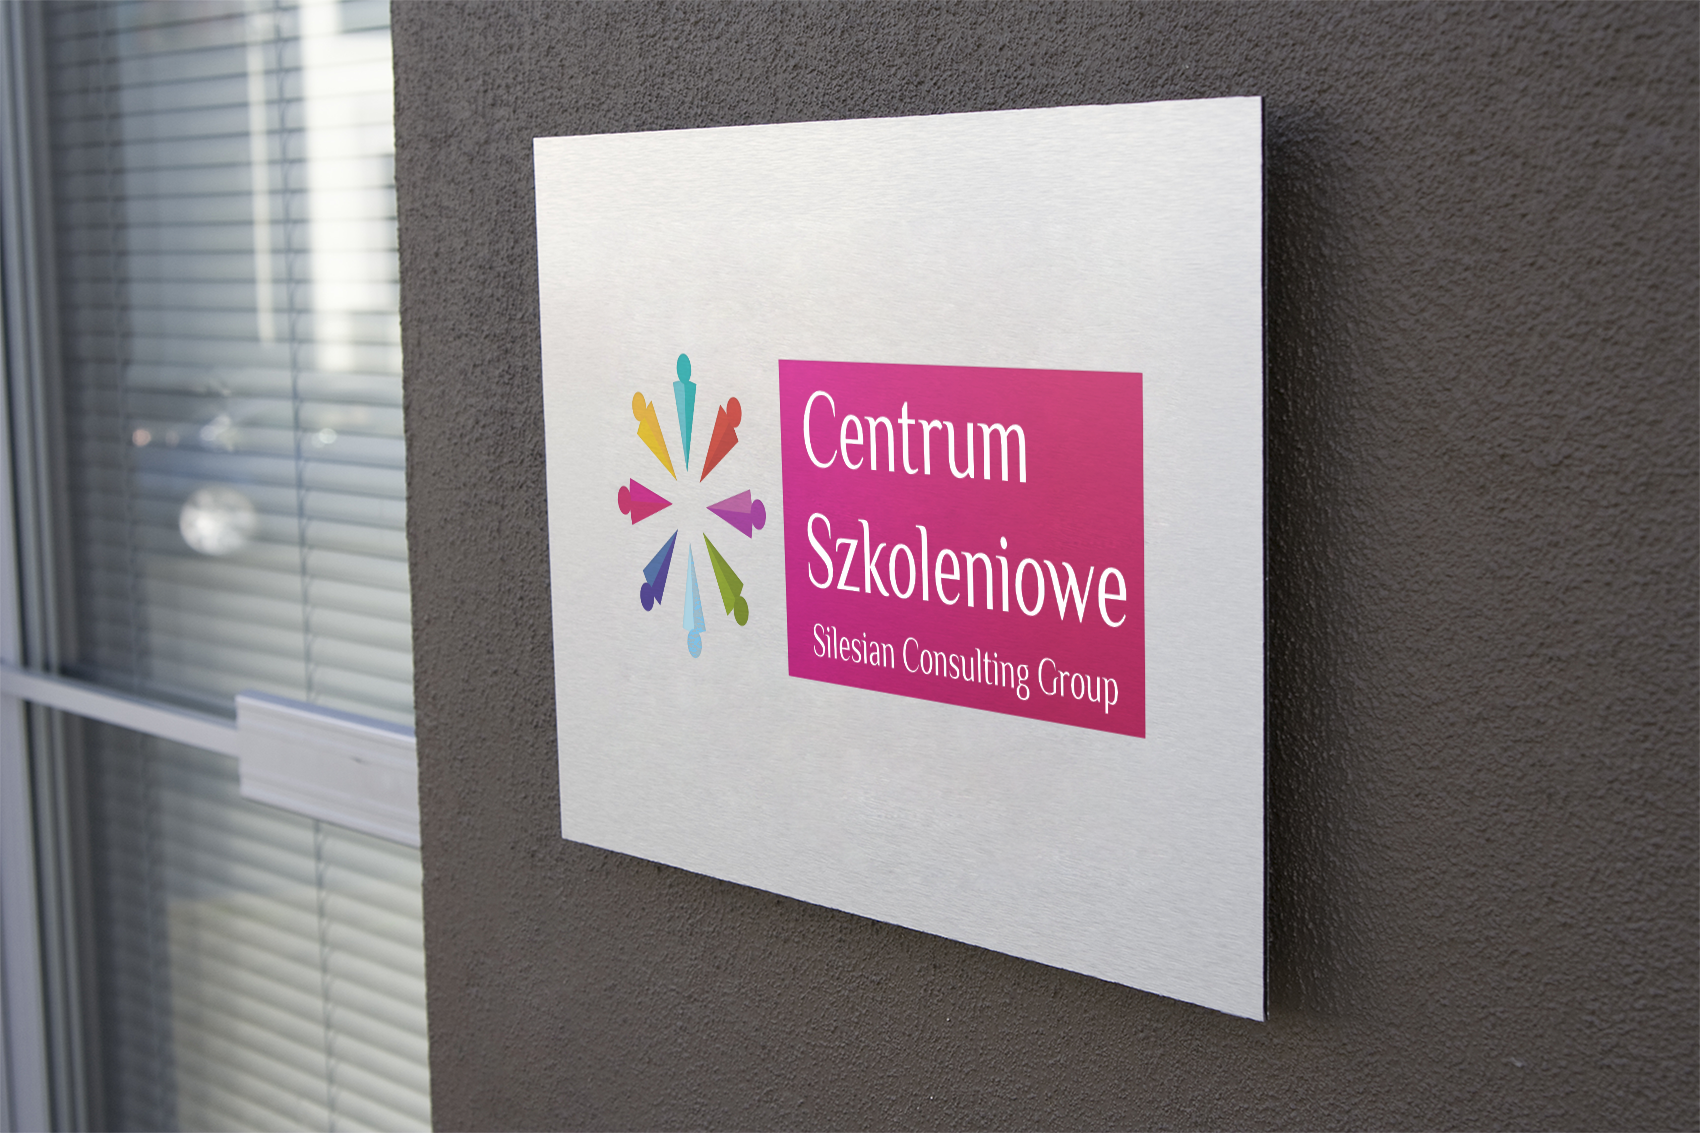 Silesian Consulting Group